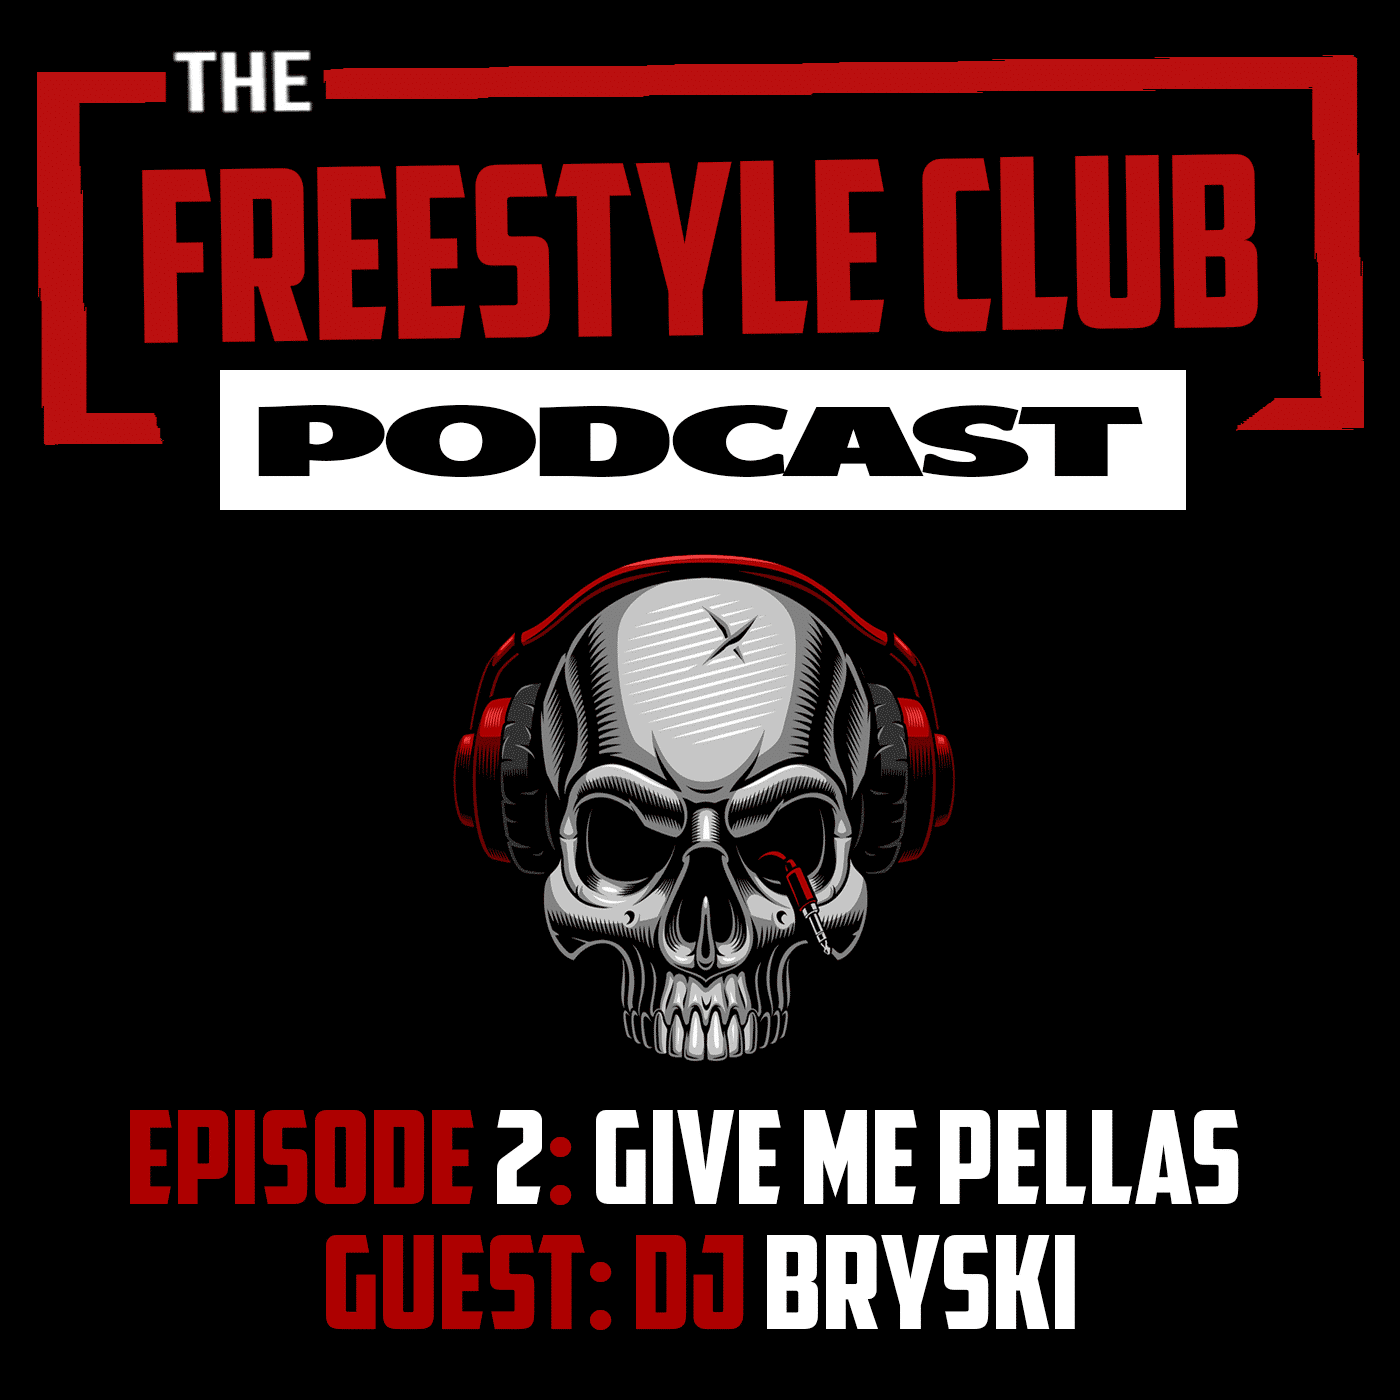 The Freestyle Club Episode 2